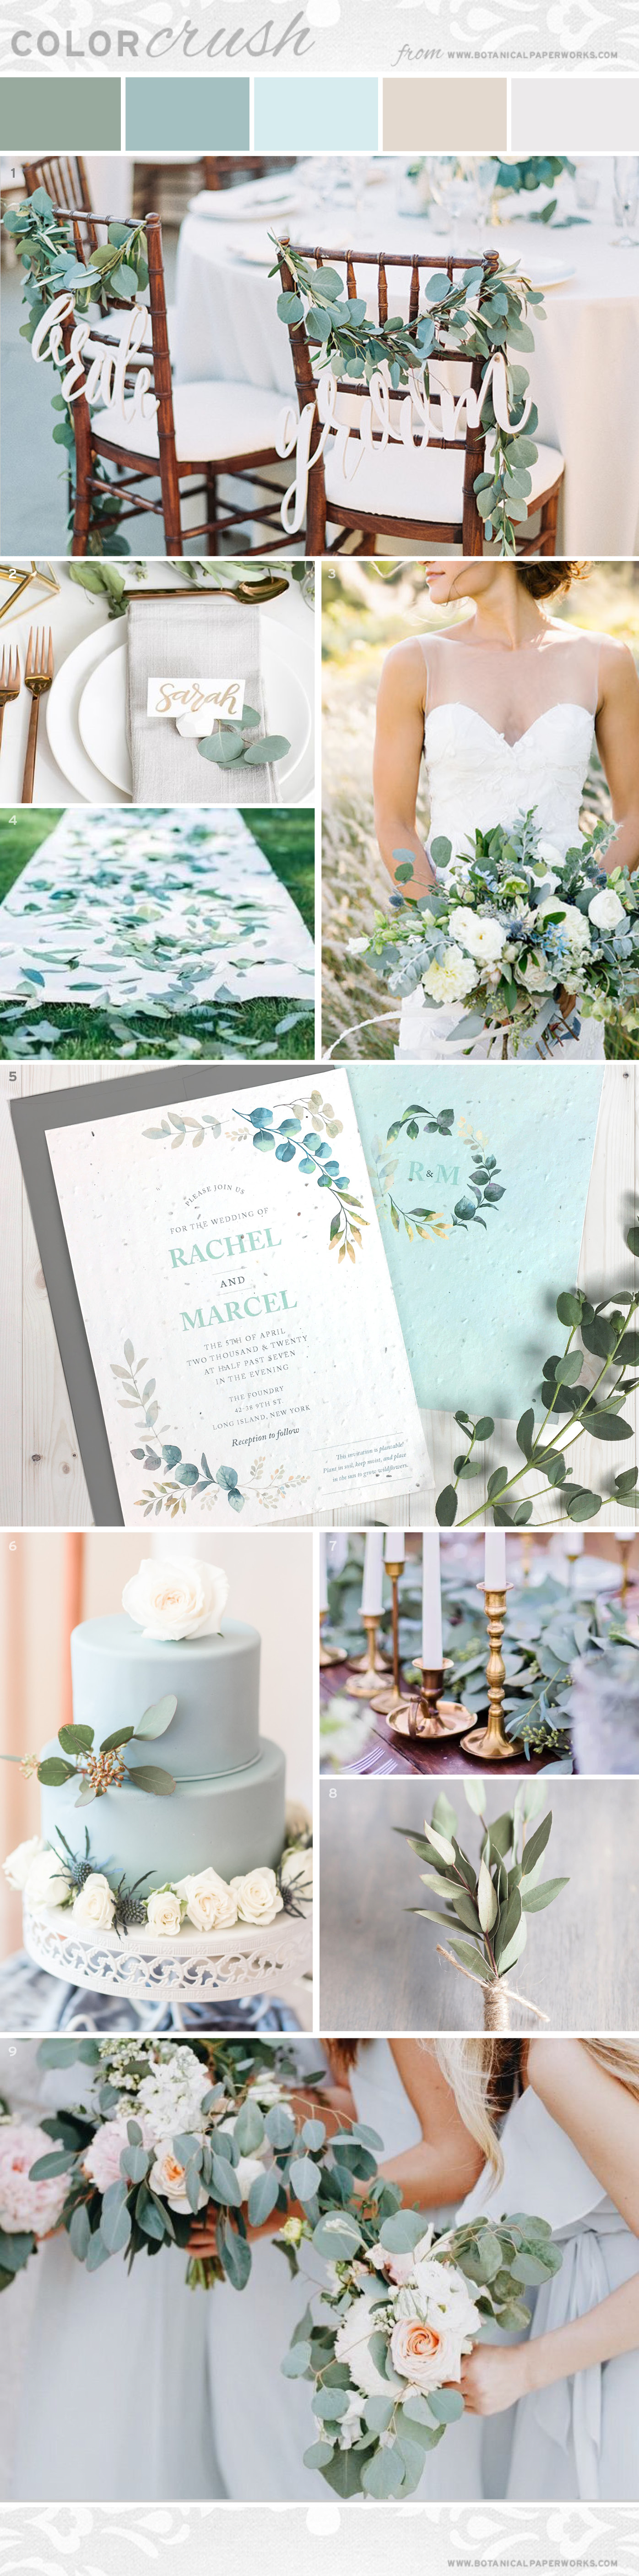 Wedding inspiration roundup featuring eucalyptus with other soft and subtle greenery, ivory, and just a touch of gold.